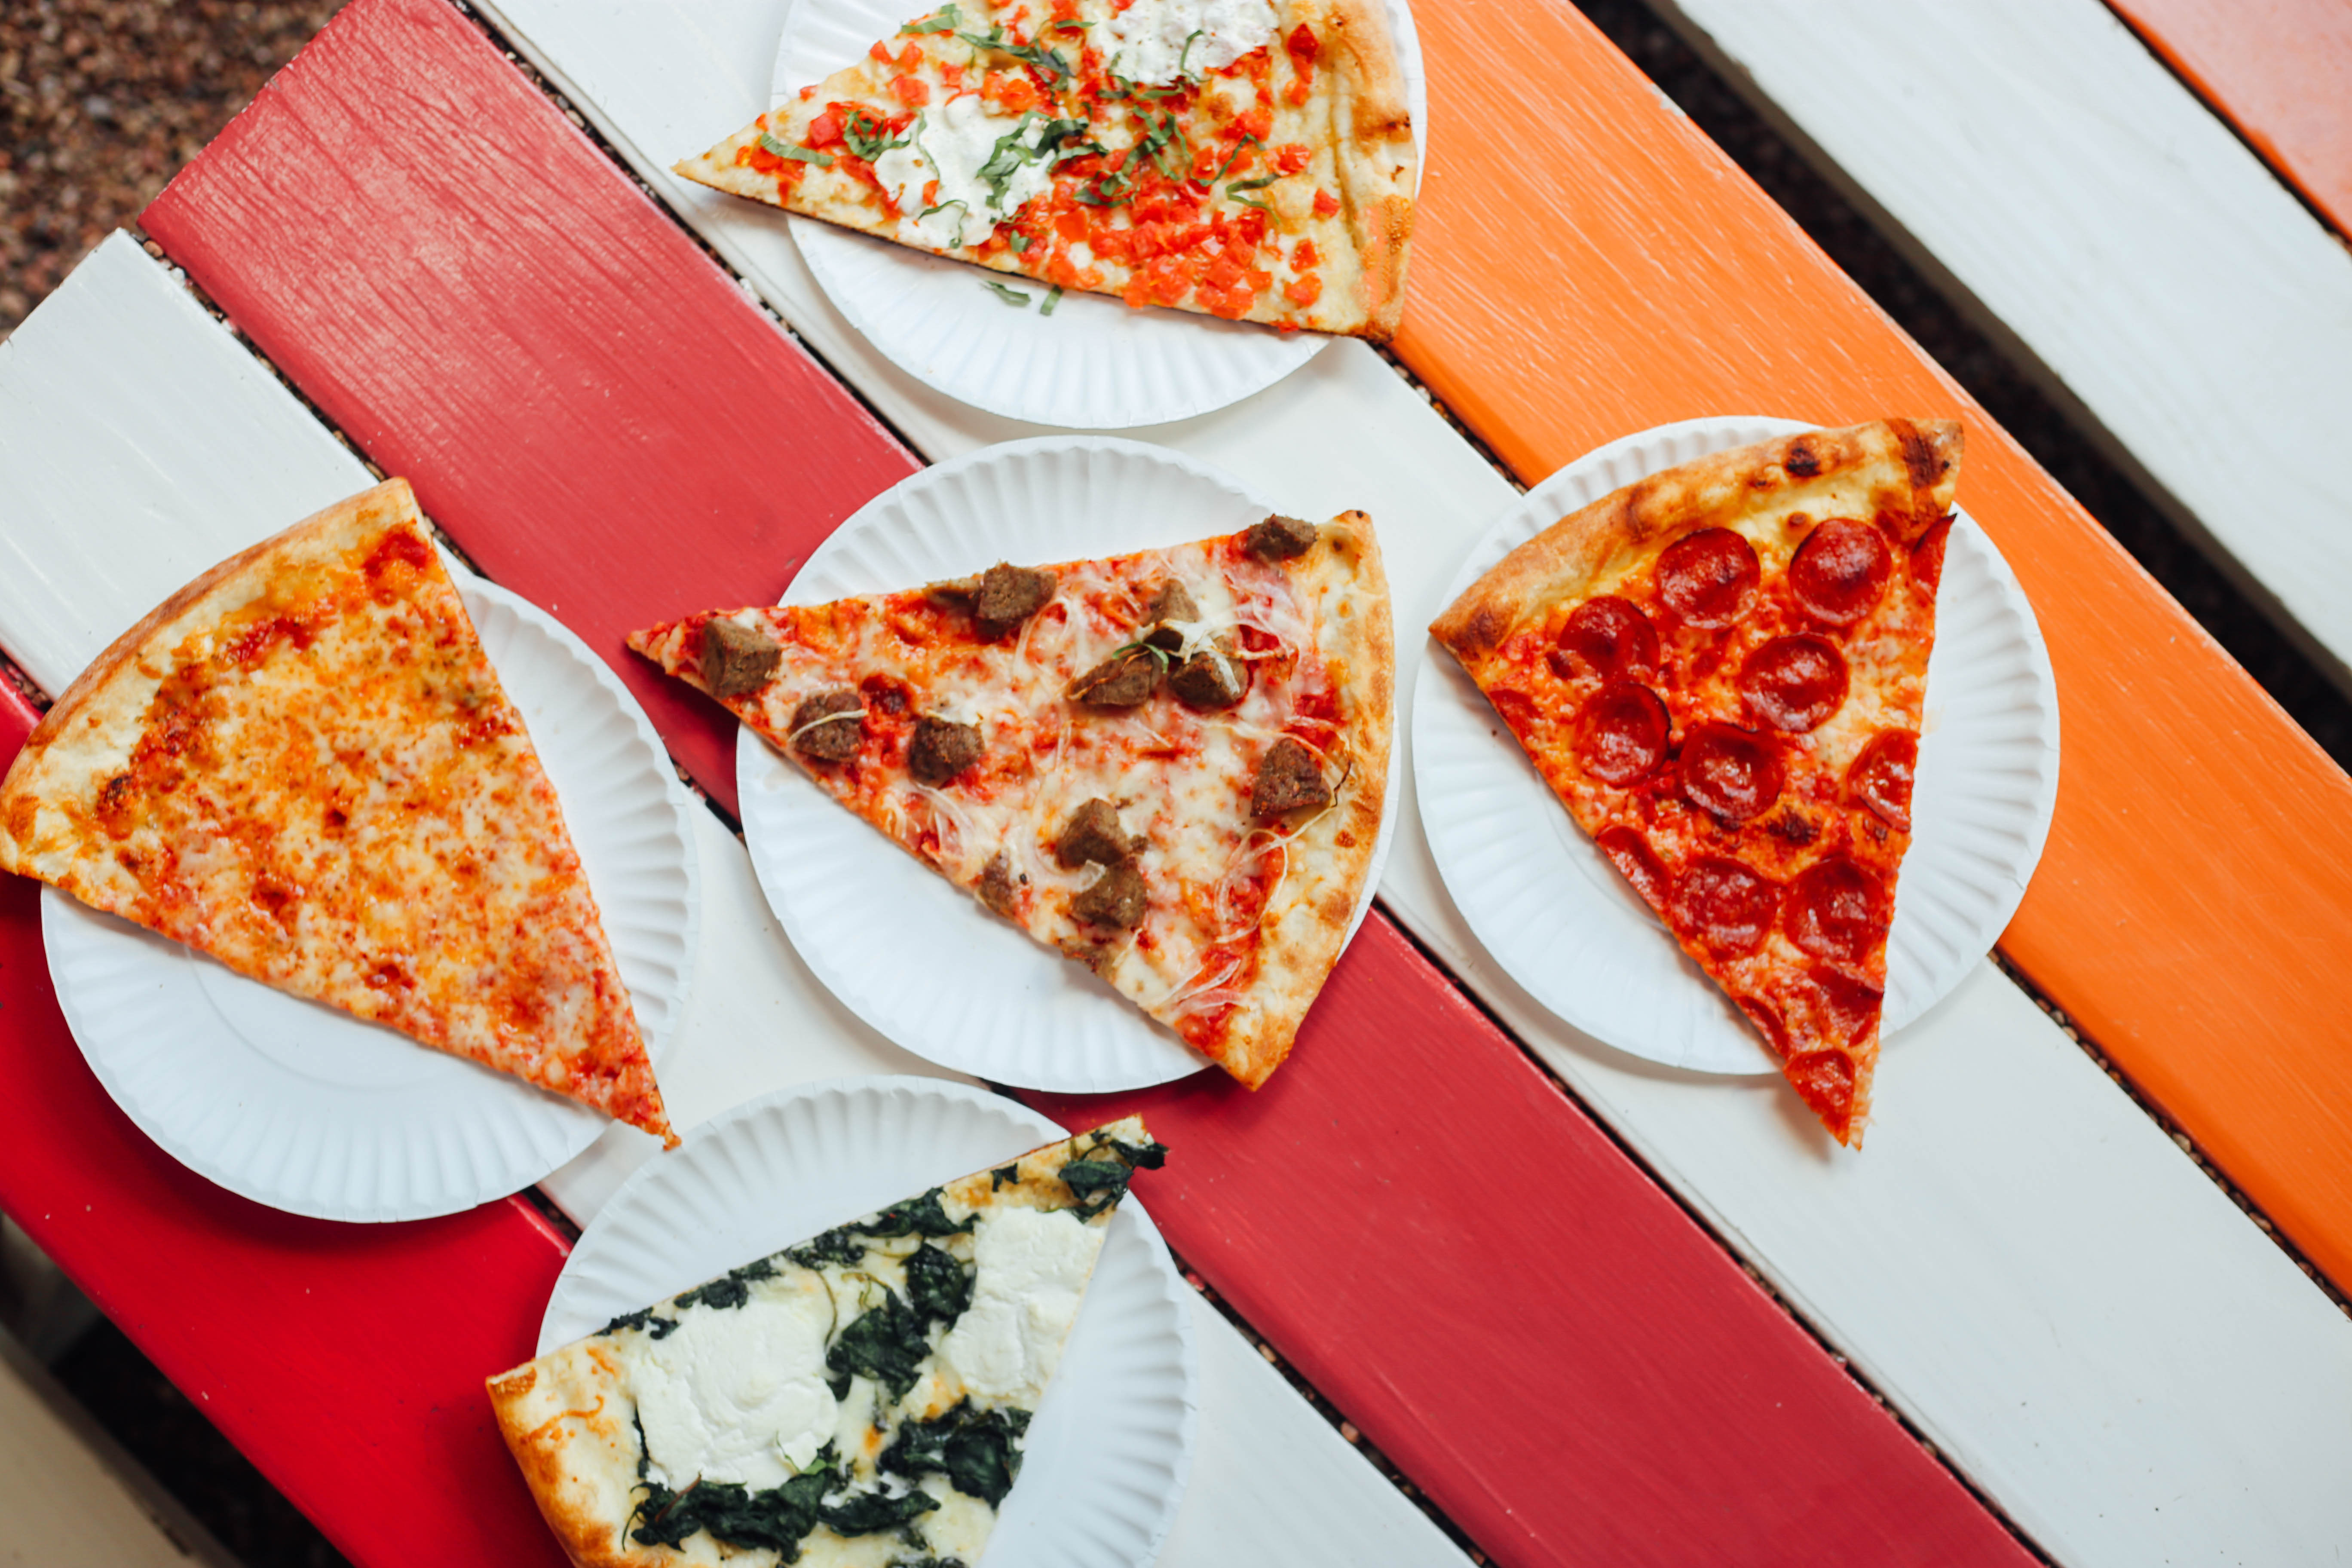 Slices from Home Slice